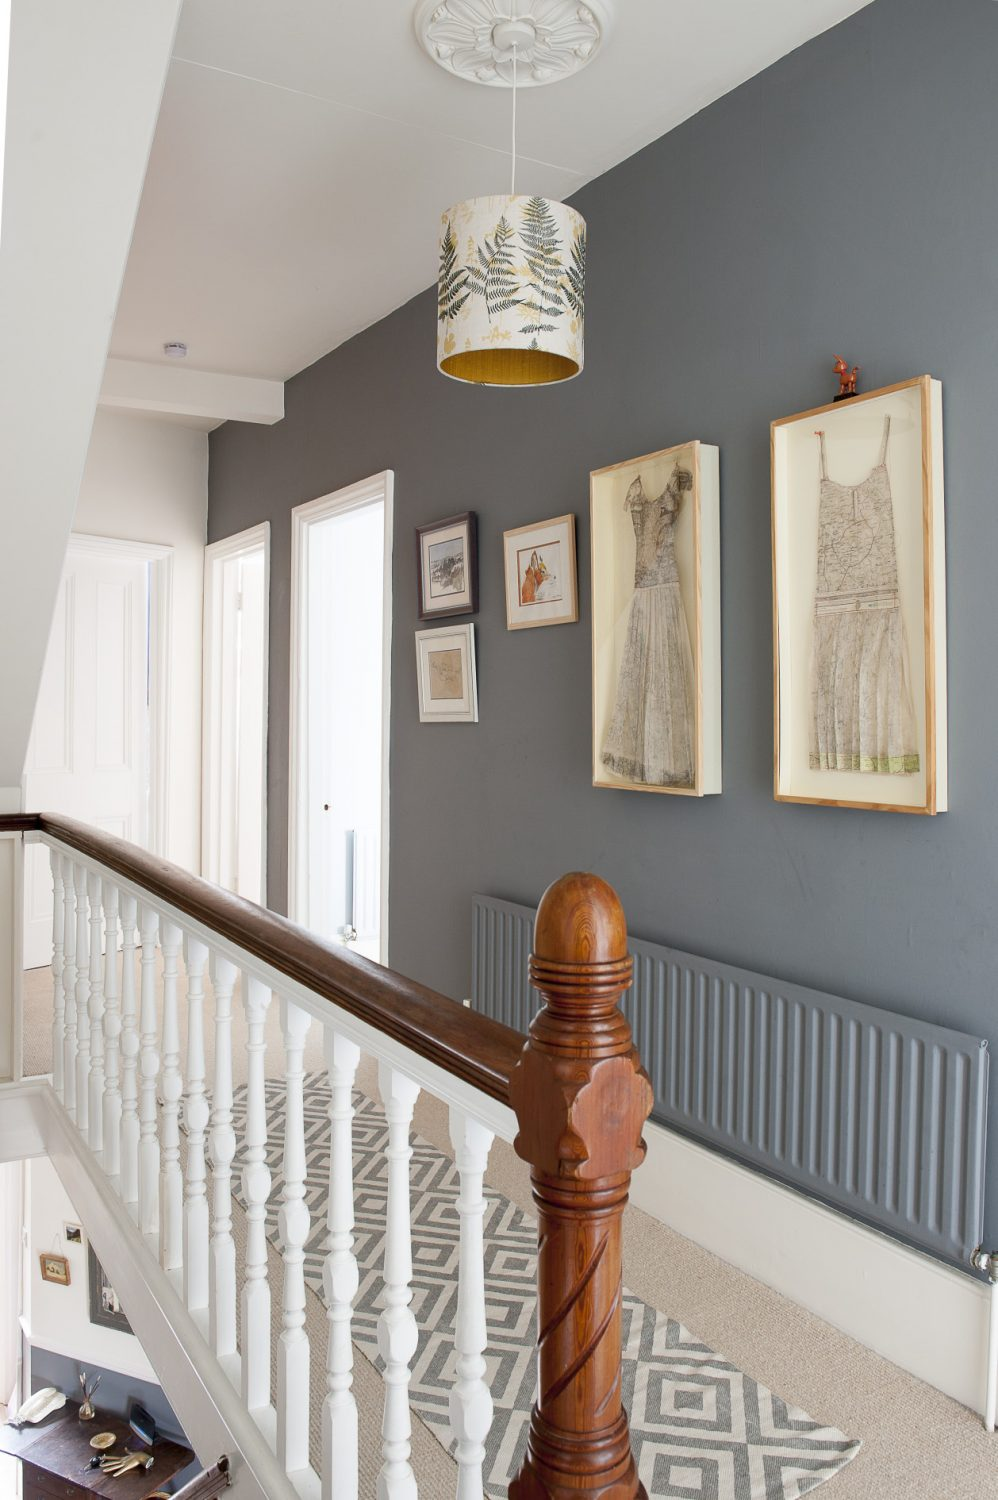 The landing wall is painted in Downpipe by Farrow & Ball. The lampshade is Louise's design